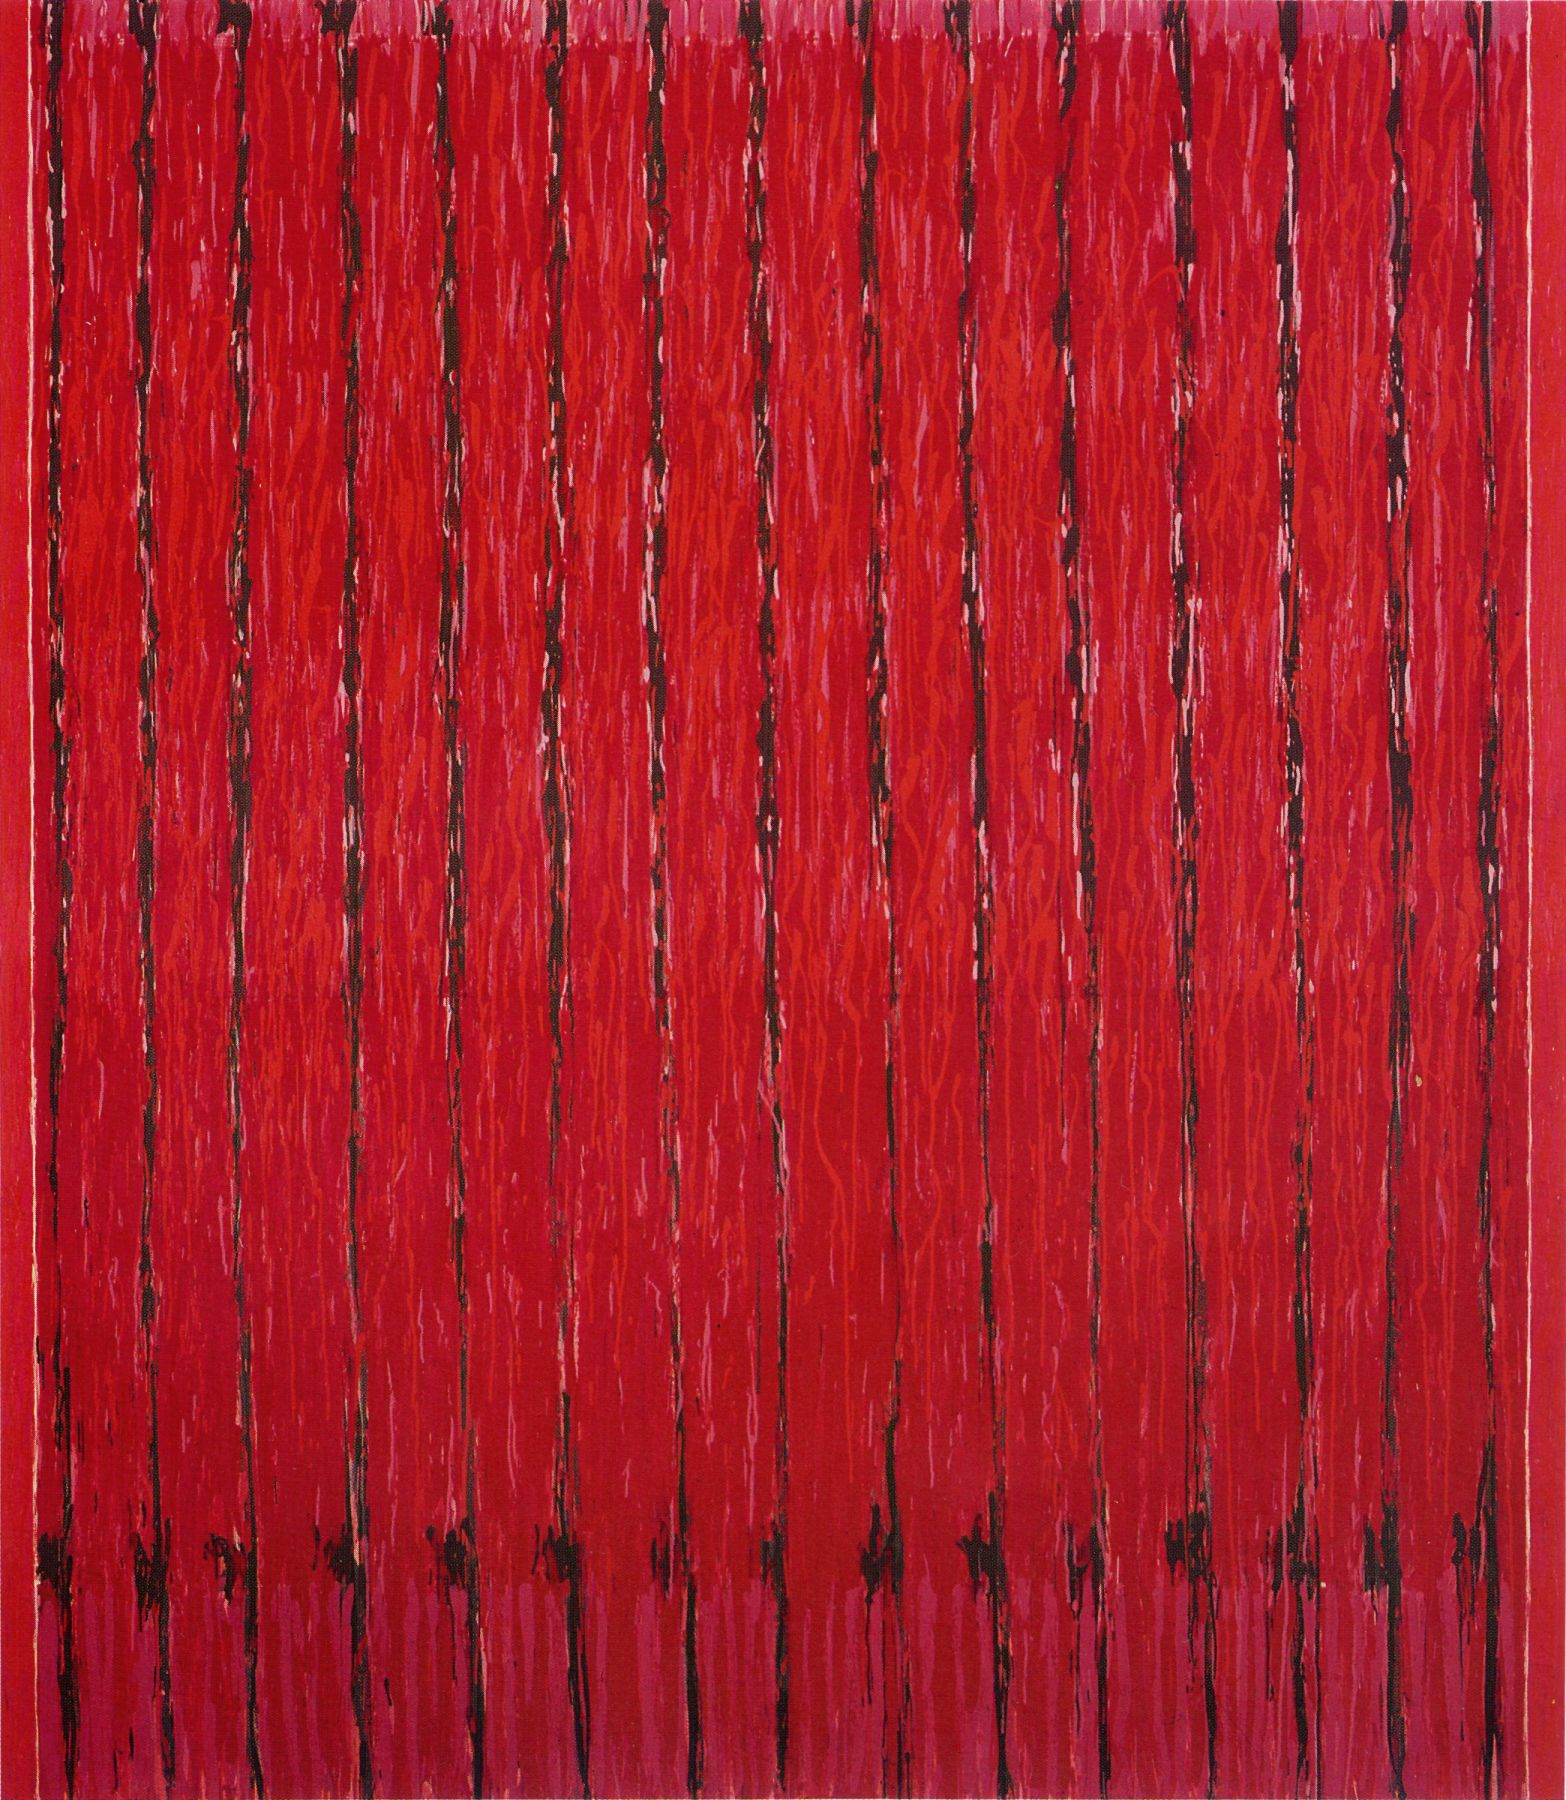 Redfield, 1968-72, Oil on canvas